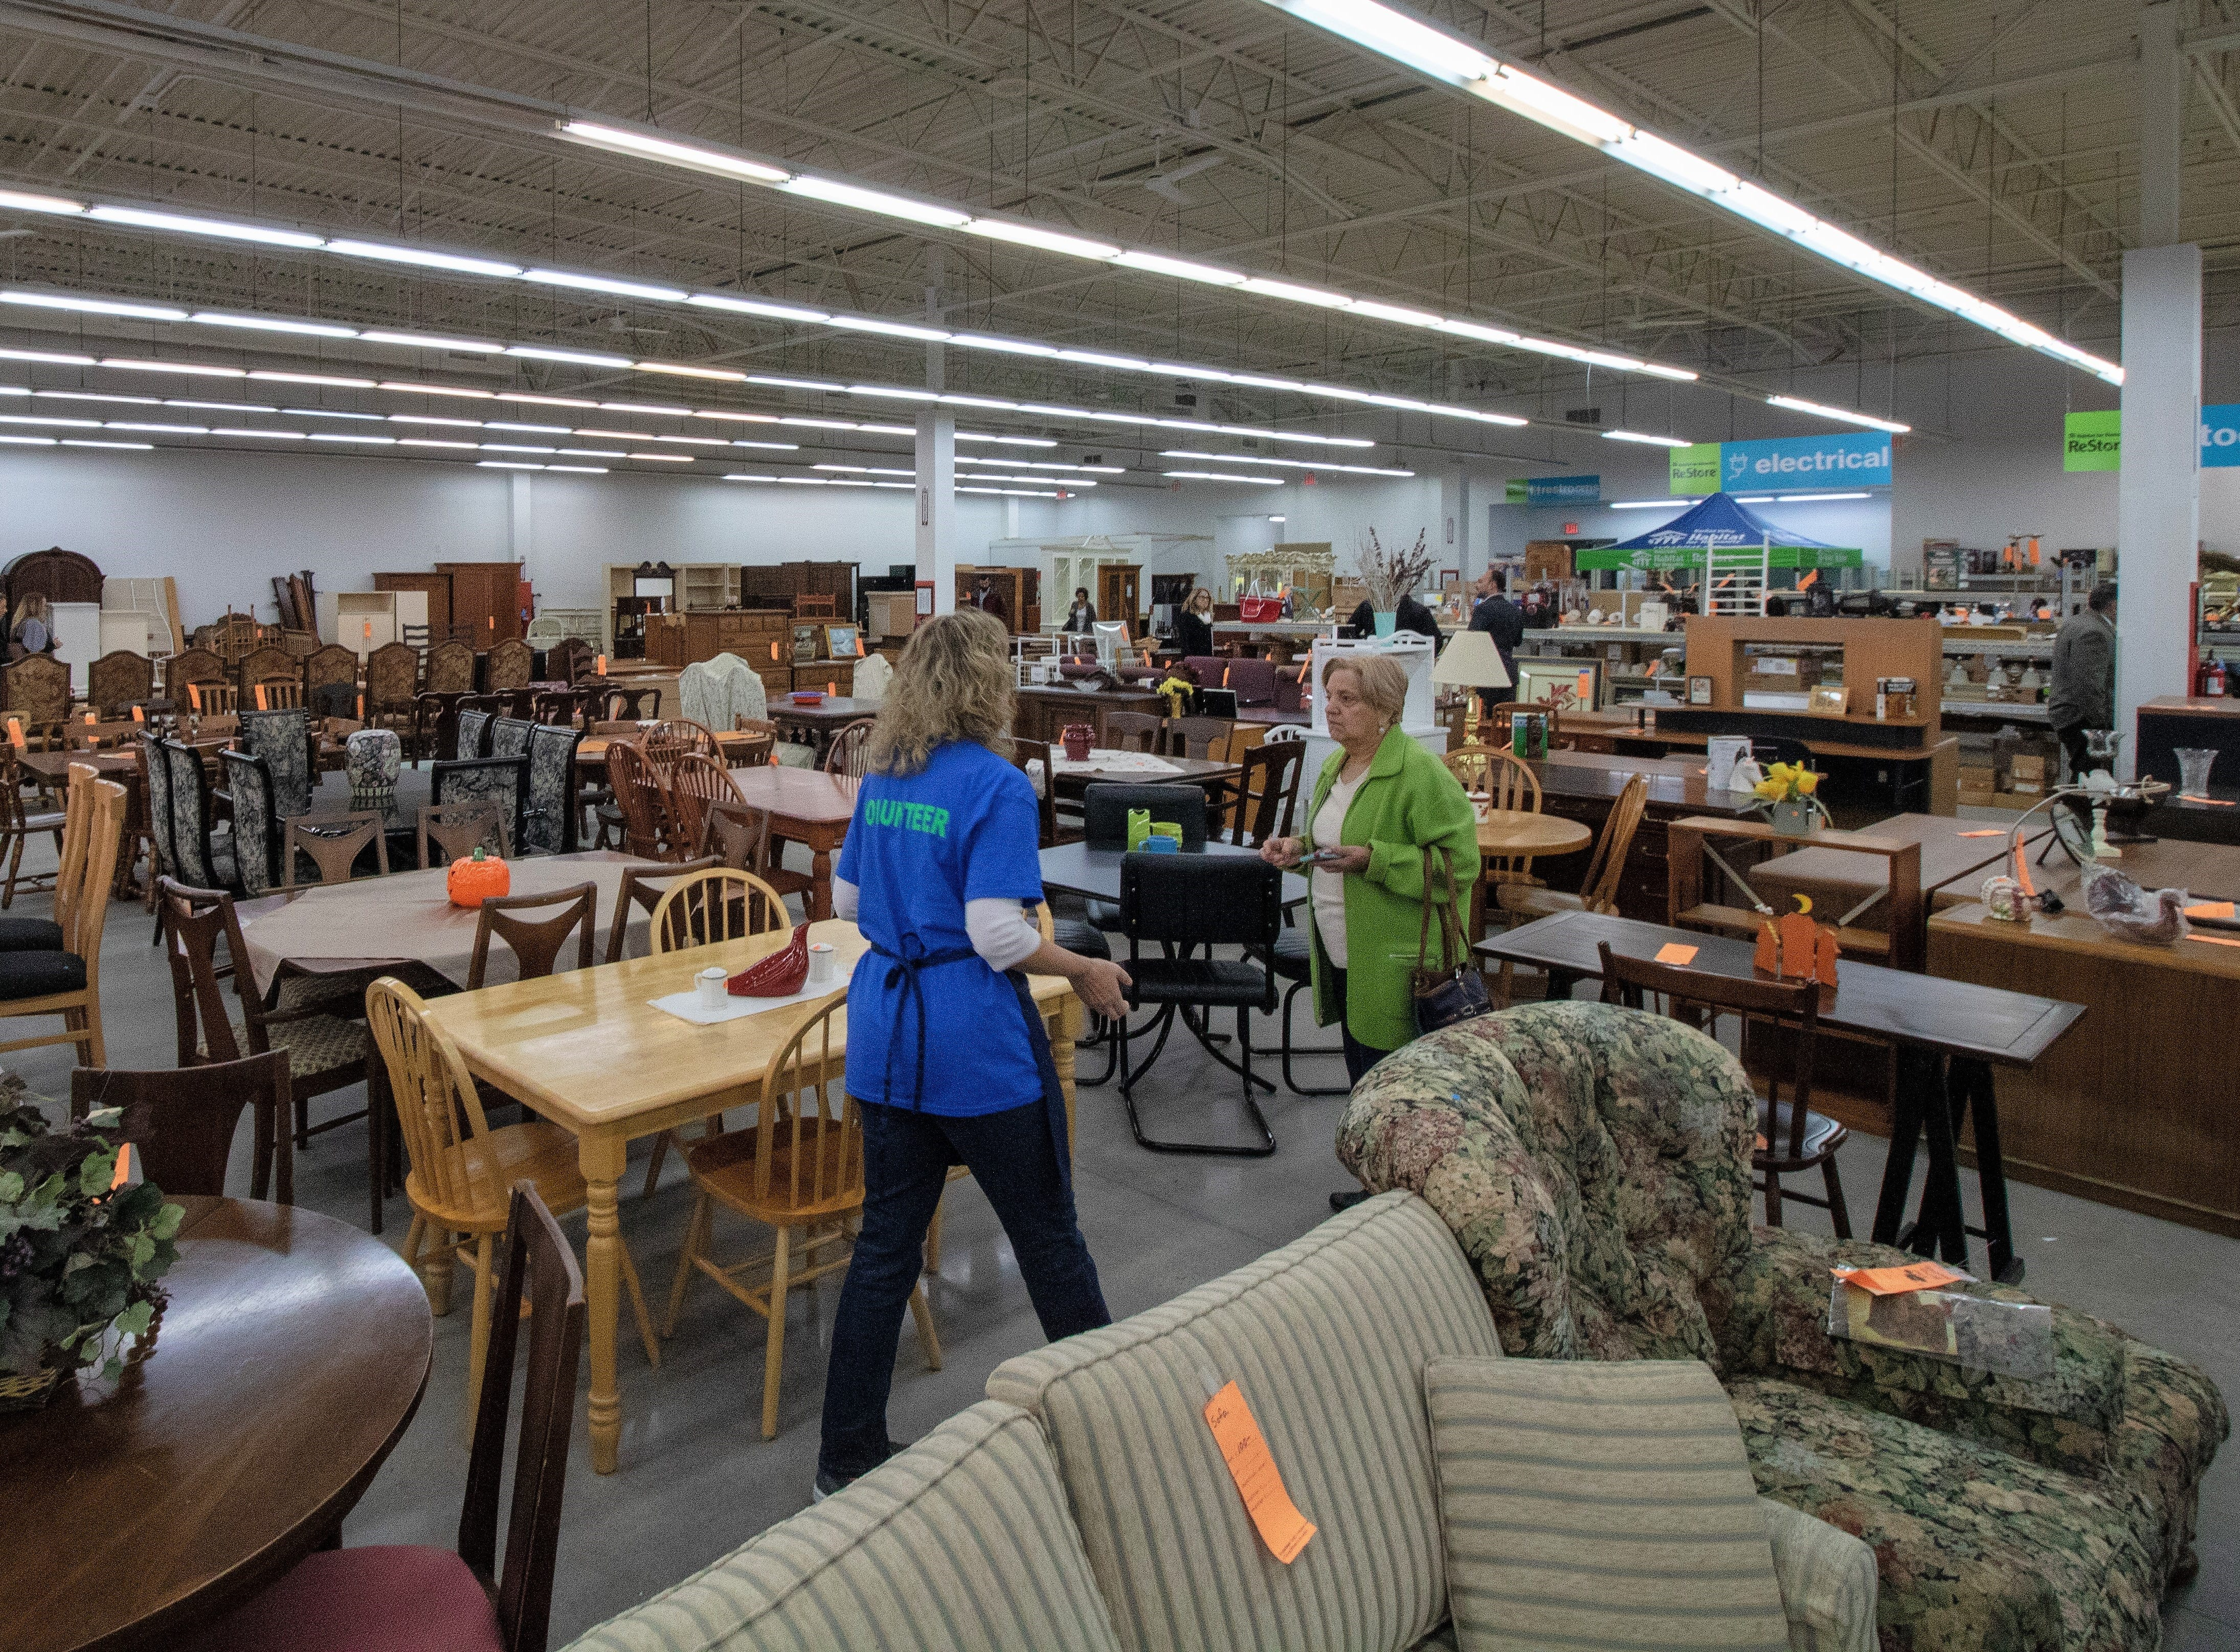 Raritan Valley Habitat for Humanity opens new Habitat ReStore in Manville with ribbon cutting ceremony on Oct. 26 at 10 a.m.